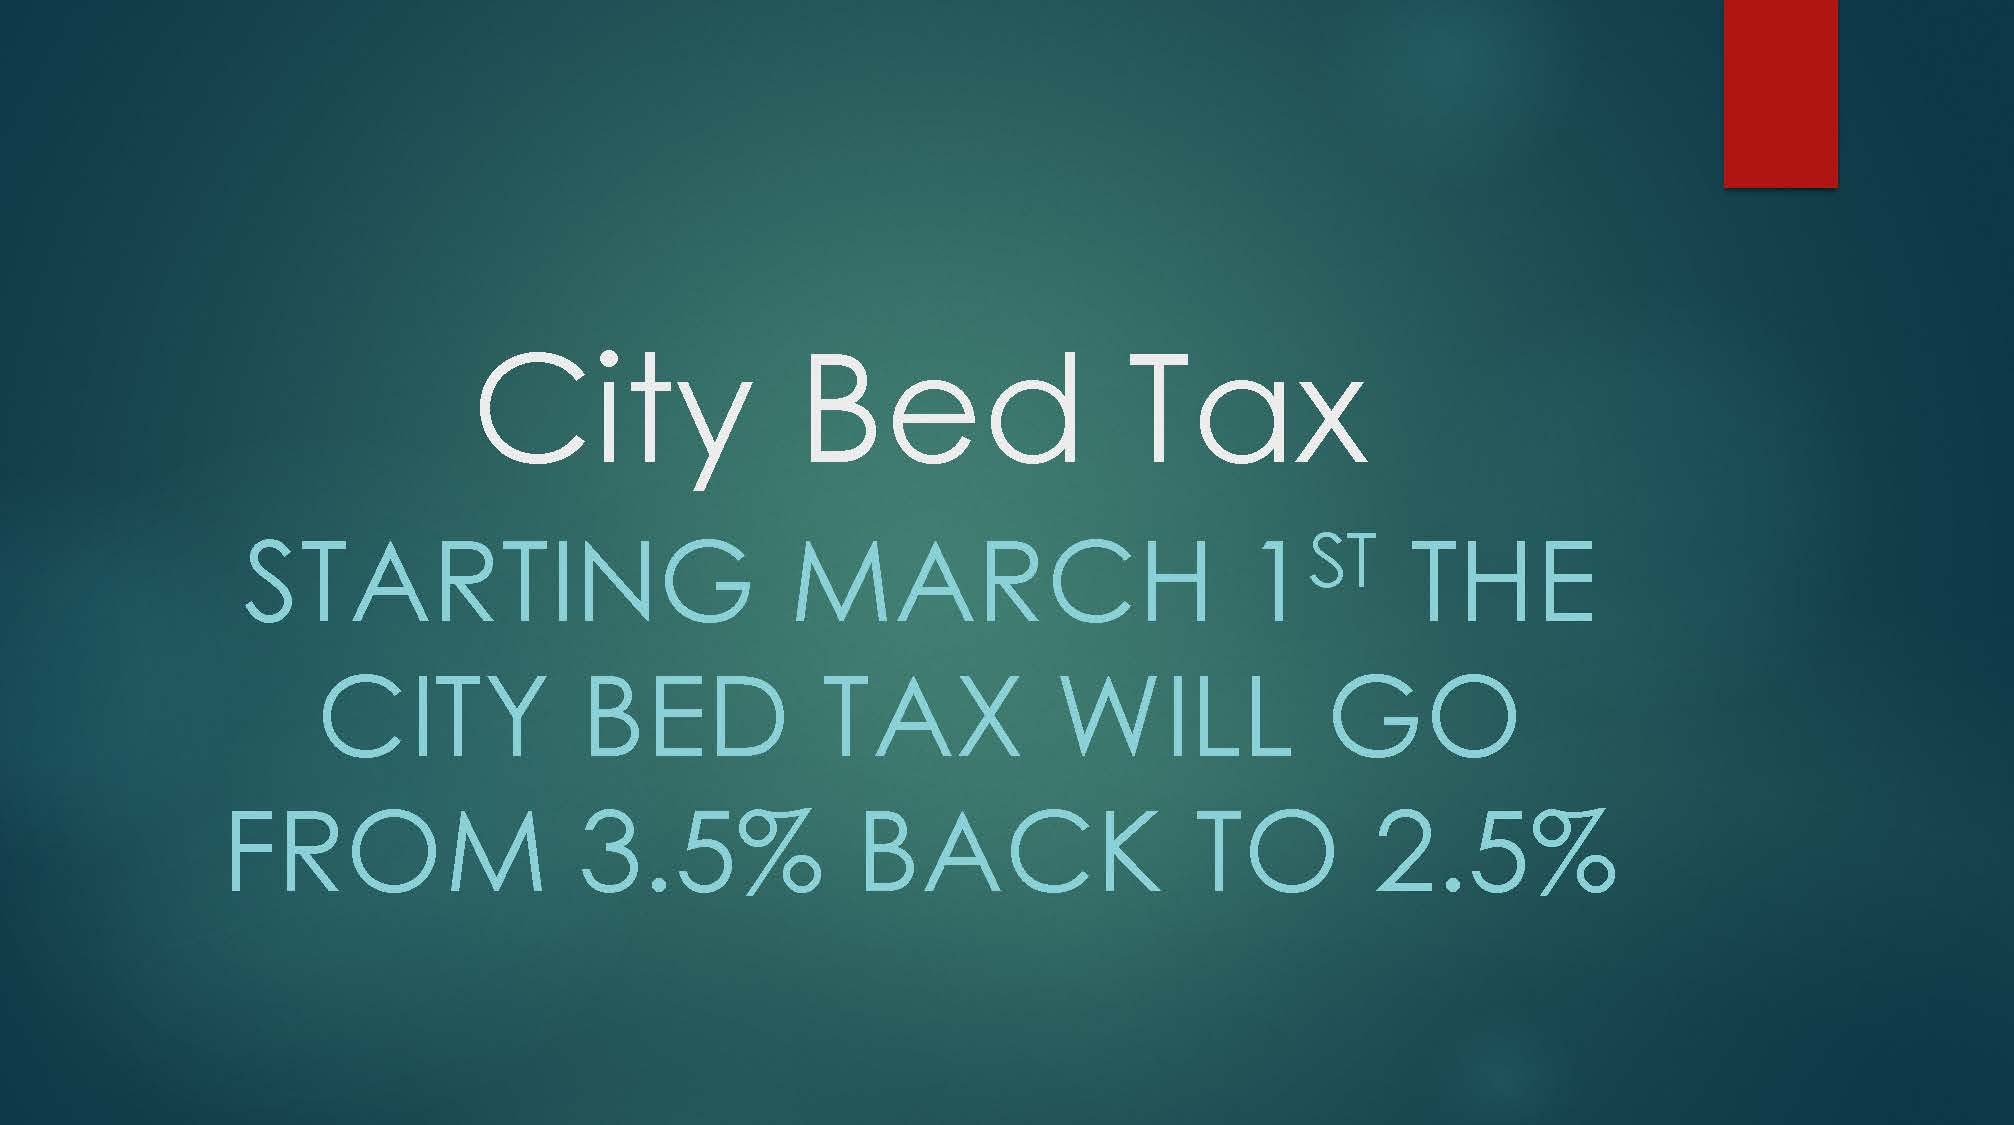 City Bed Tax